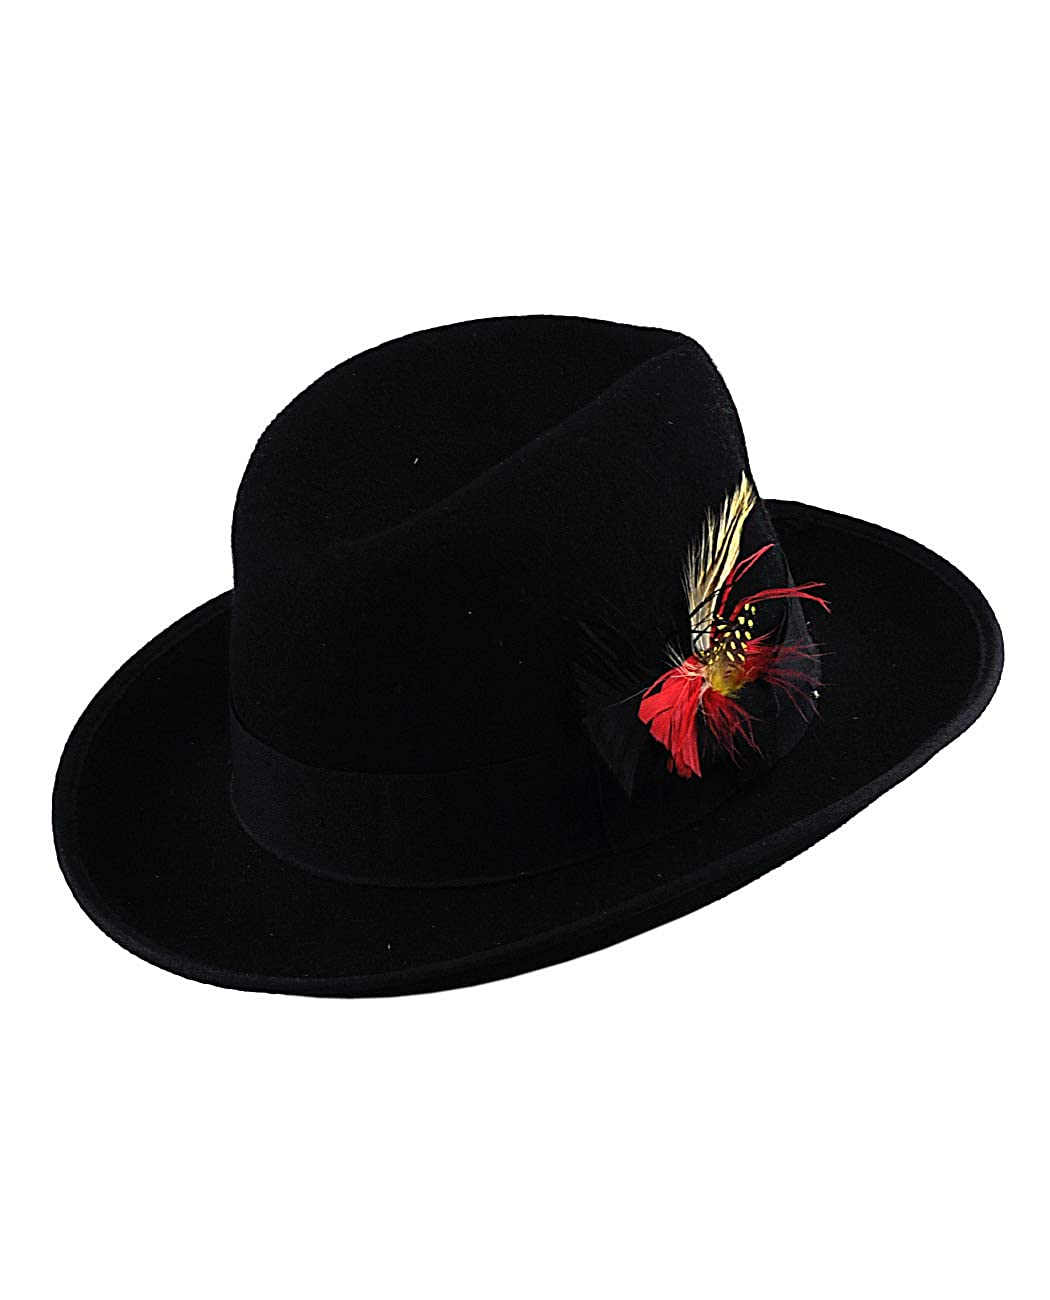 NYFASHION101 Men's Classic Wool Solid Wide Brim Black Fedora Hat with Feather Band Medium Wide Feather Fedora-M